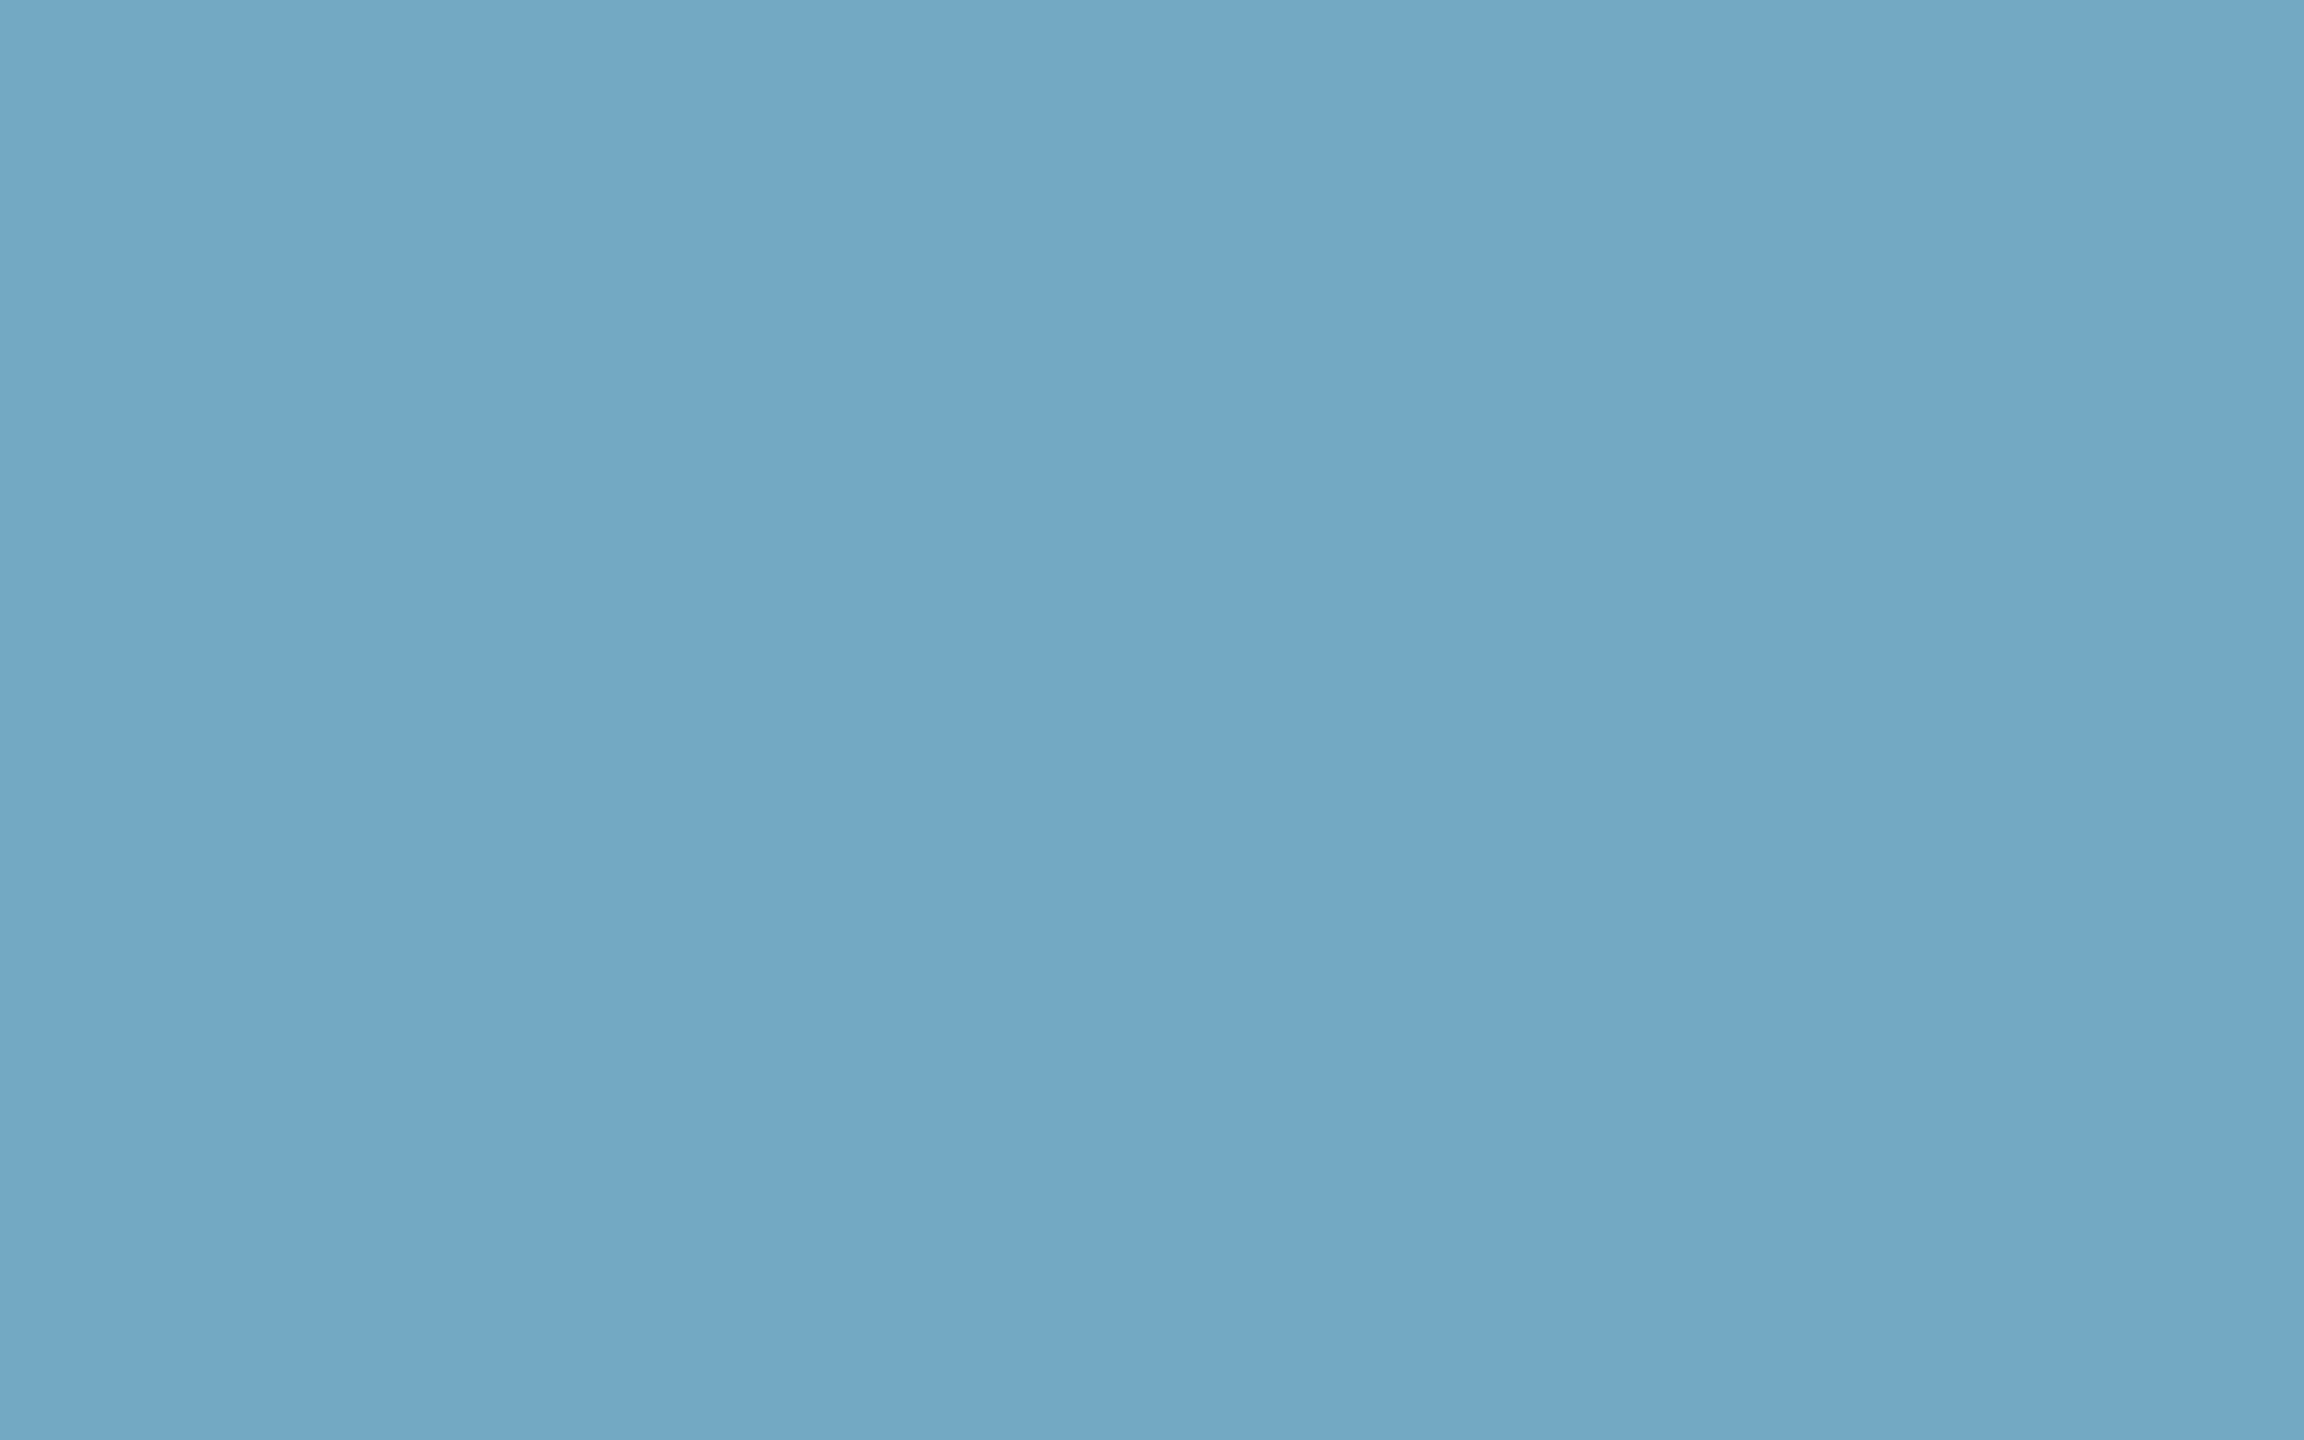 2304x1440 Moonstone Blue Solid Color Background